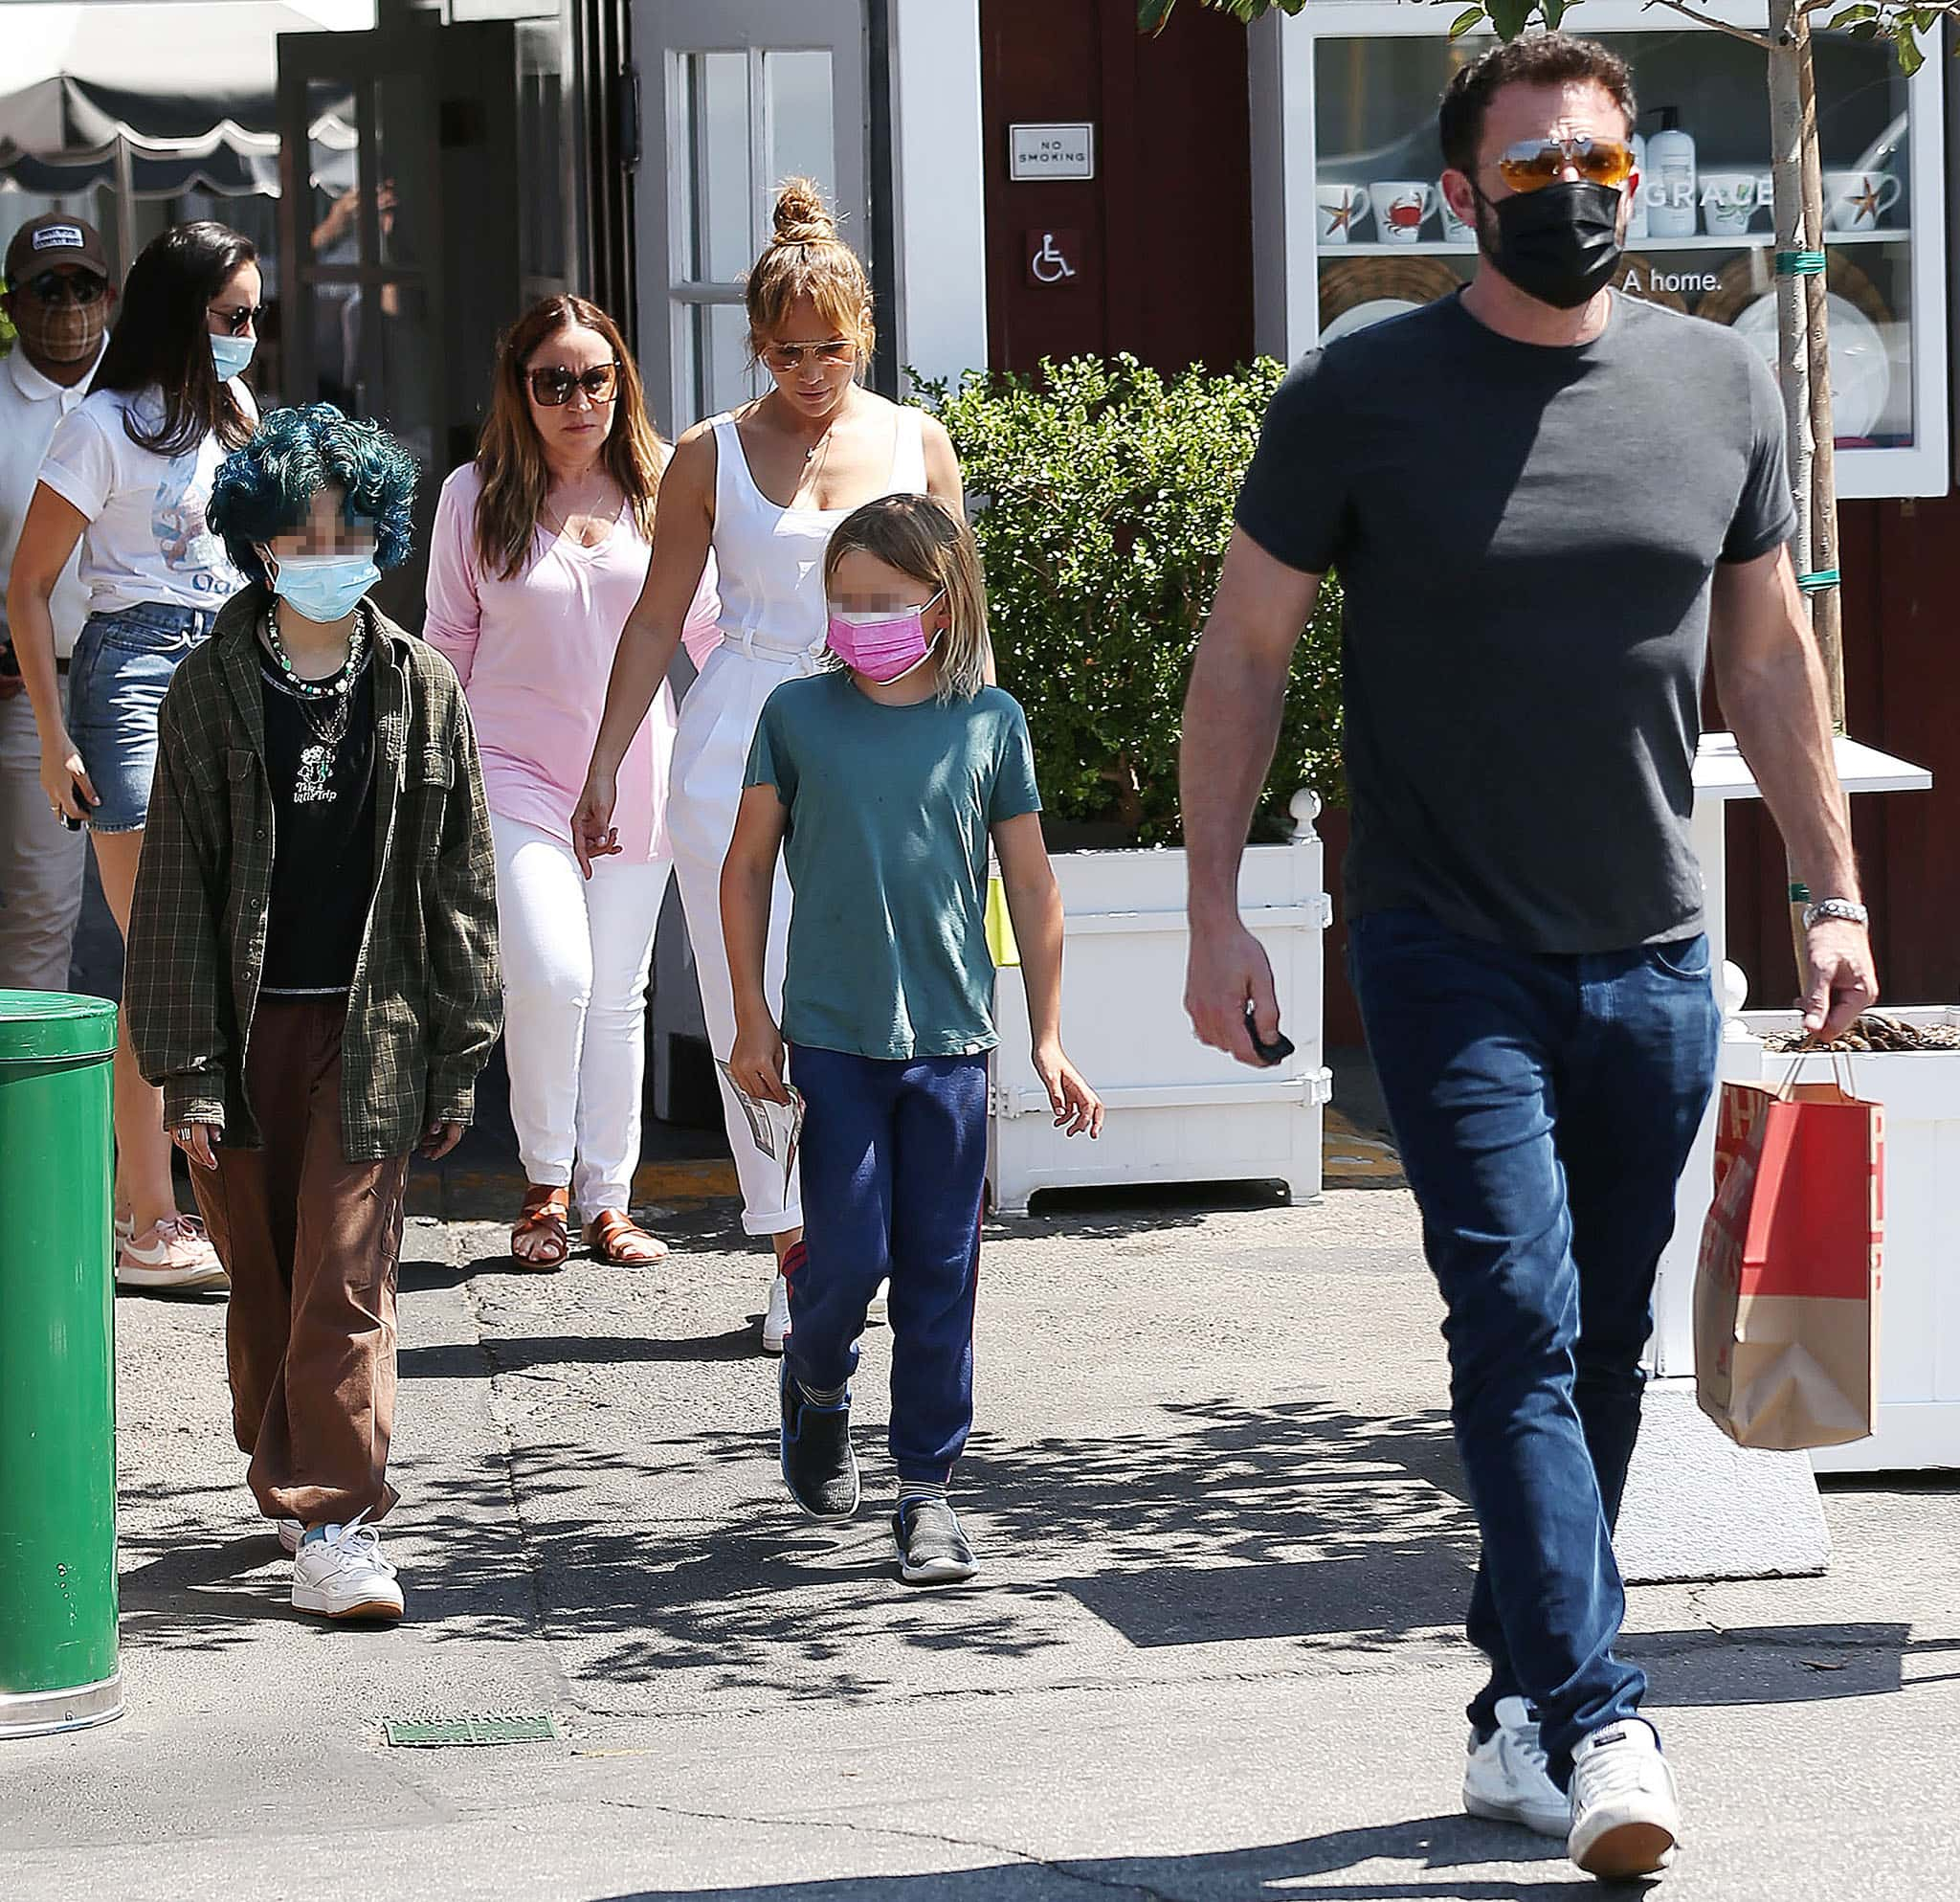 Ben Affleck and Jennifer Lopez take their kids, Emme and Sam, to lunch at Brentwood Country Mart in Santa Monica on July 9, 2021